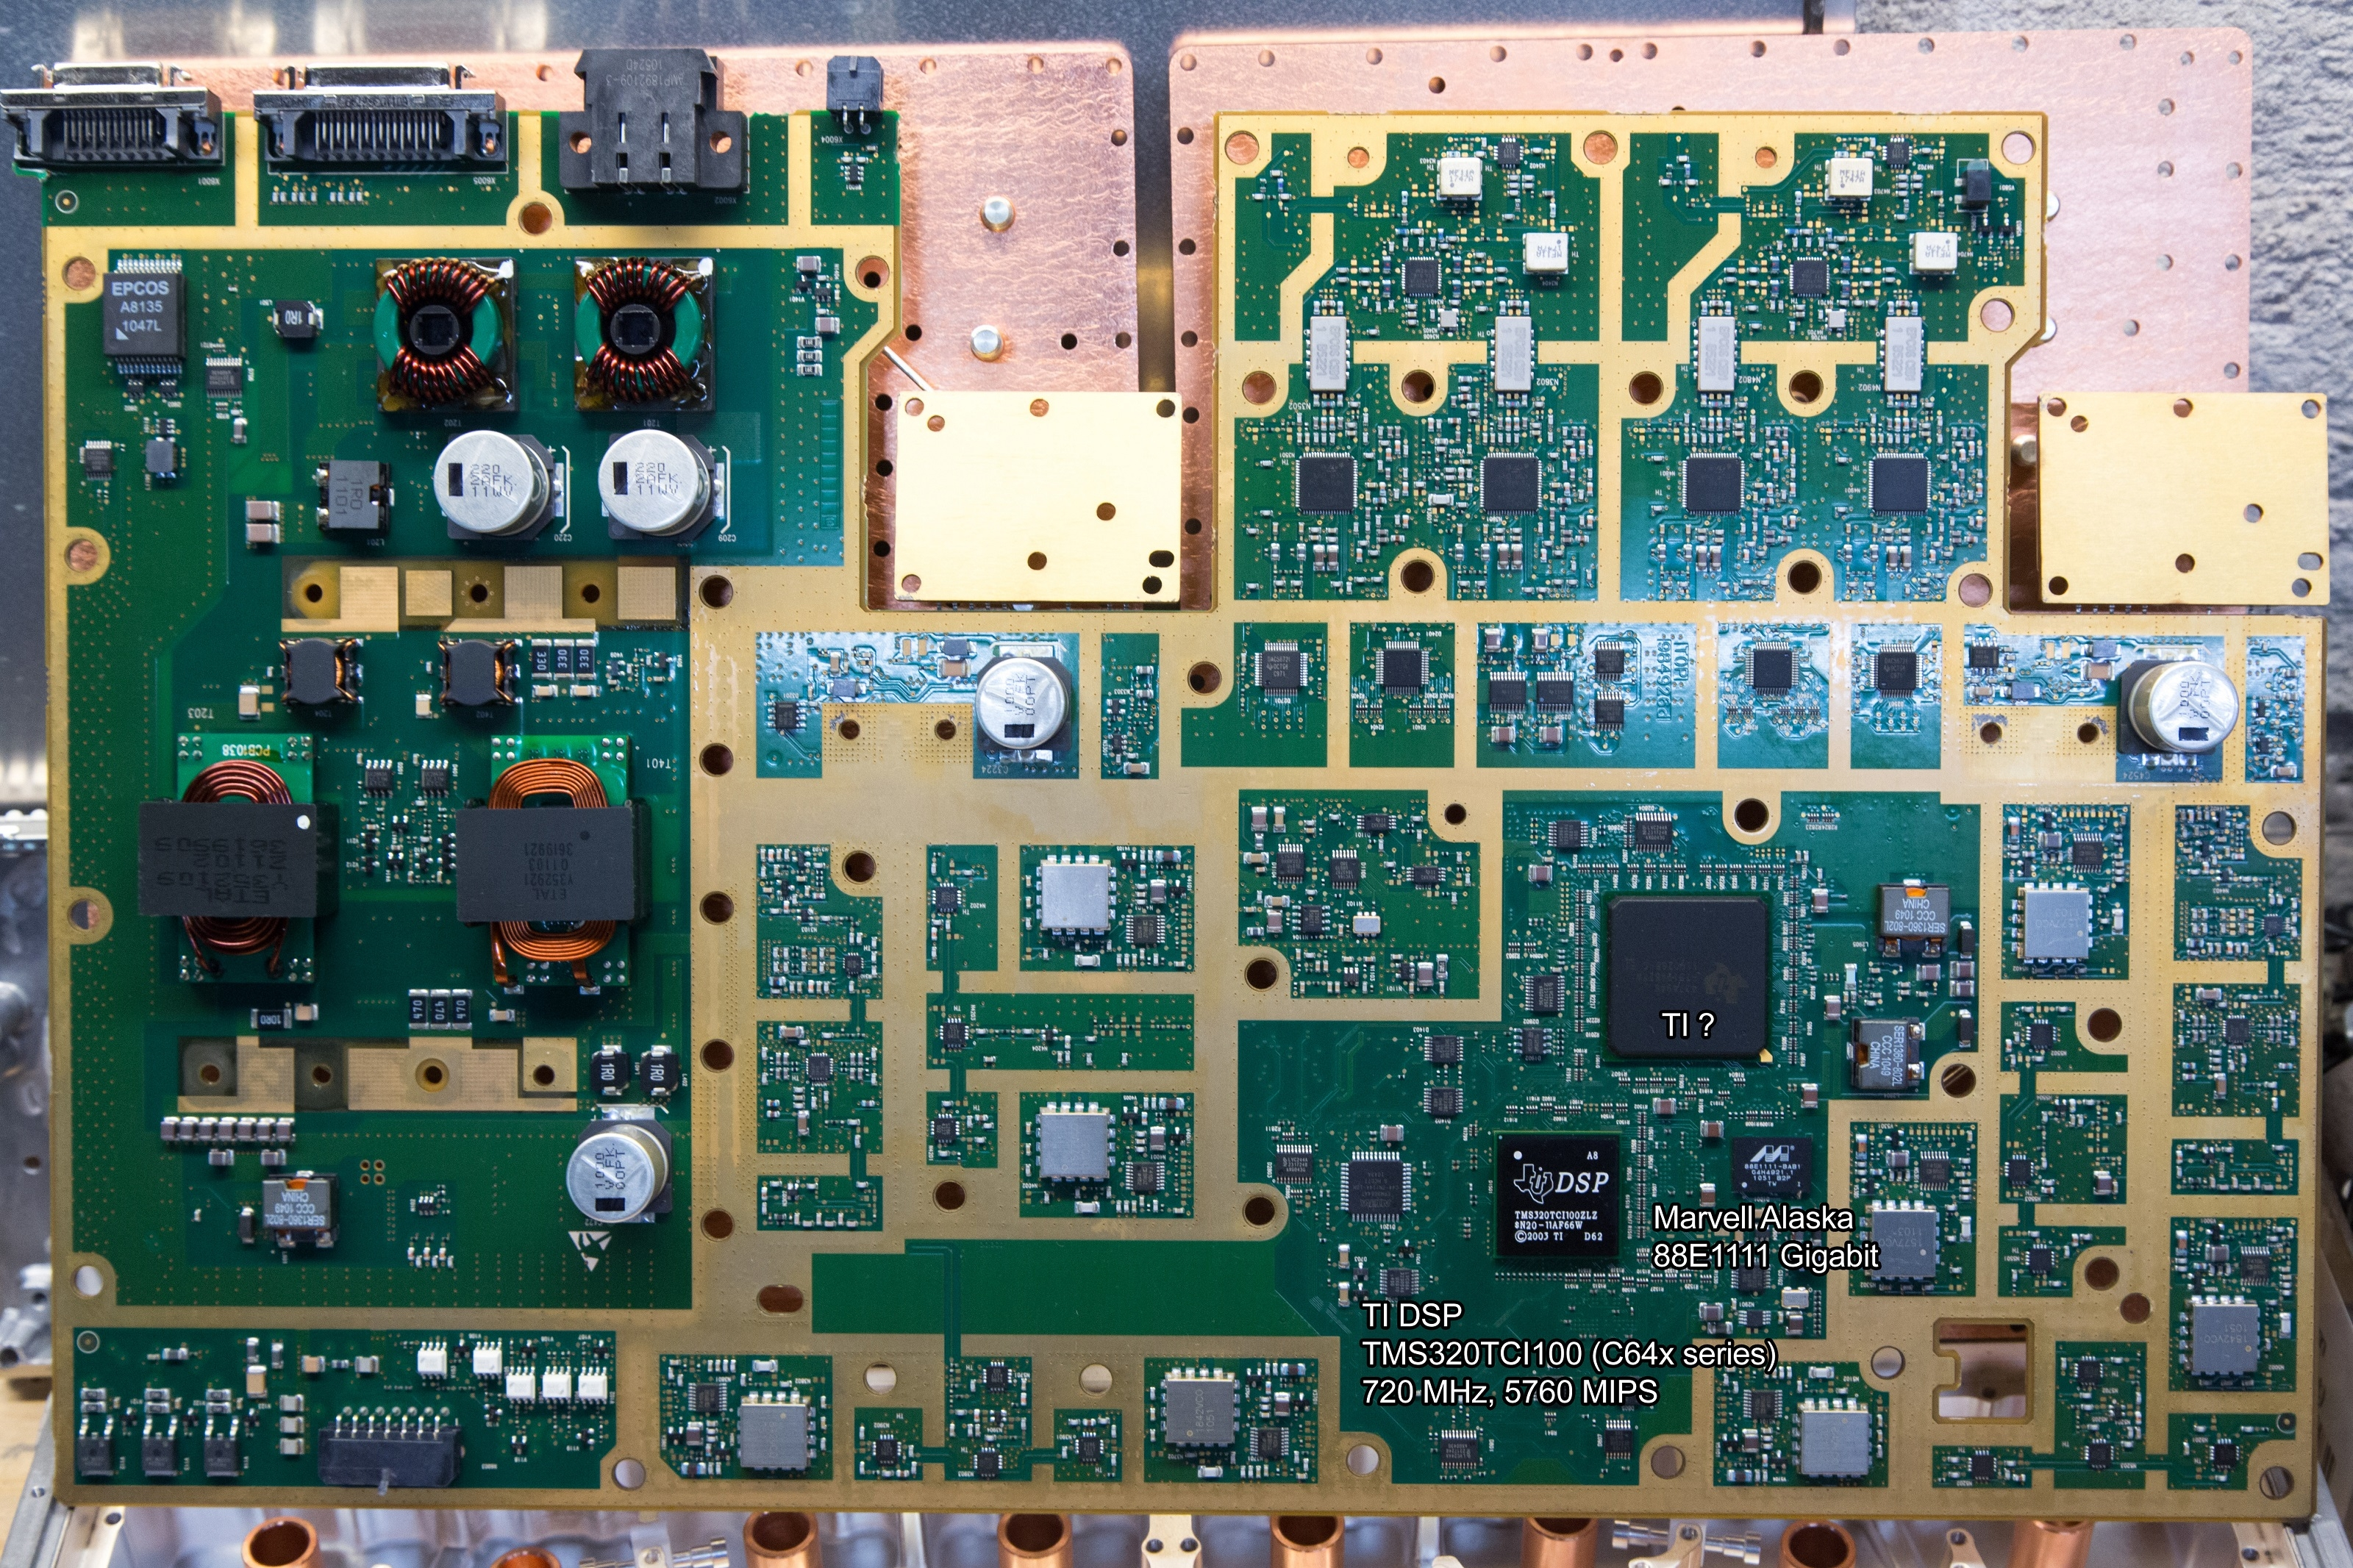 Nokia Siemens Flexi BTS base station teardown: Circuit